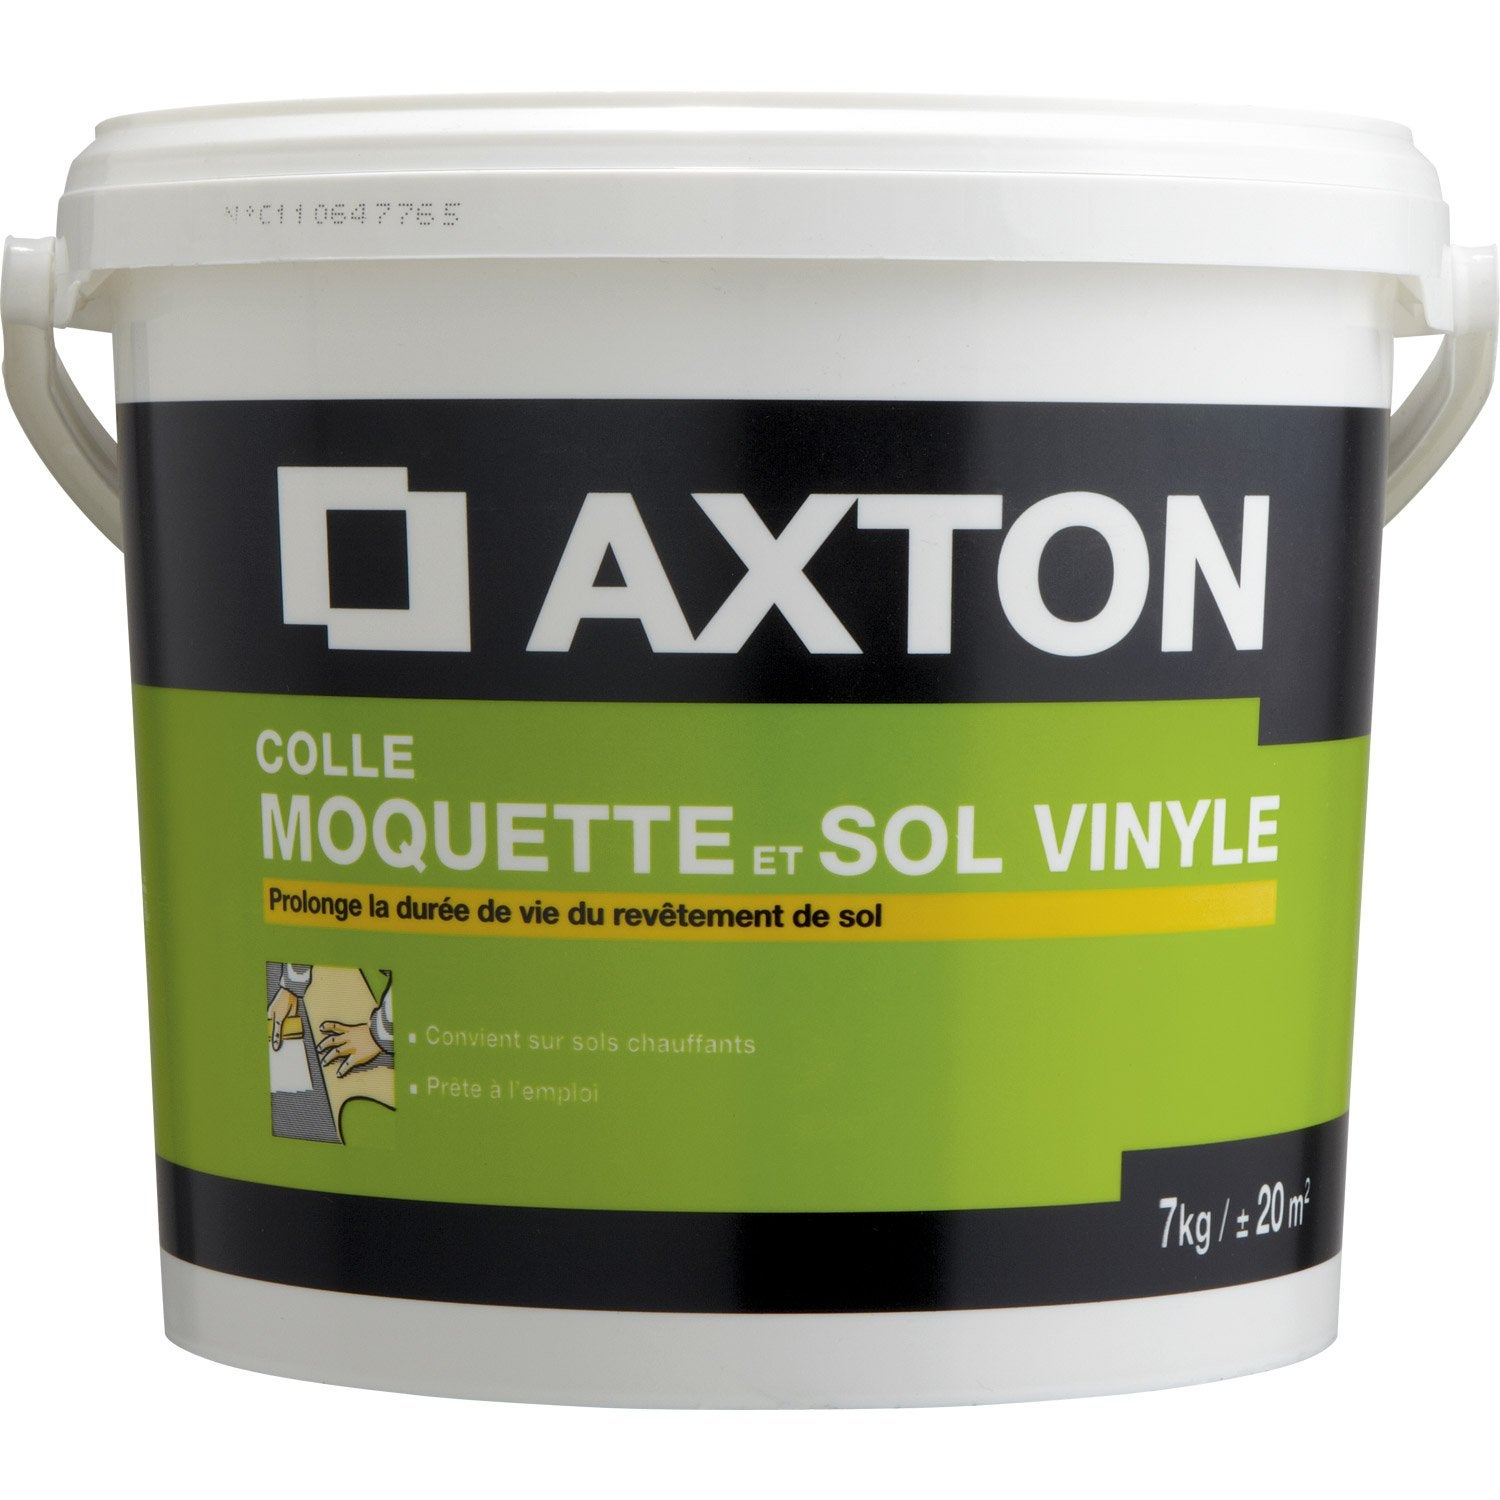 Colle sol souple 7 kg axton leroy merlin for Sol pvc sans colle